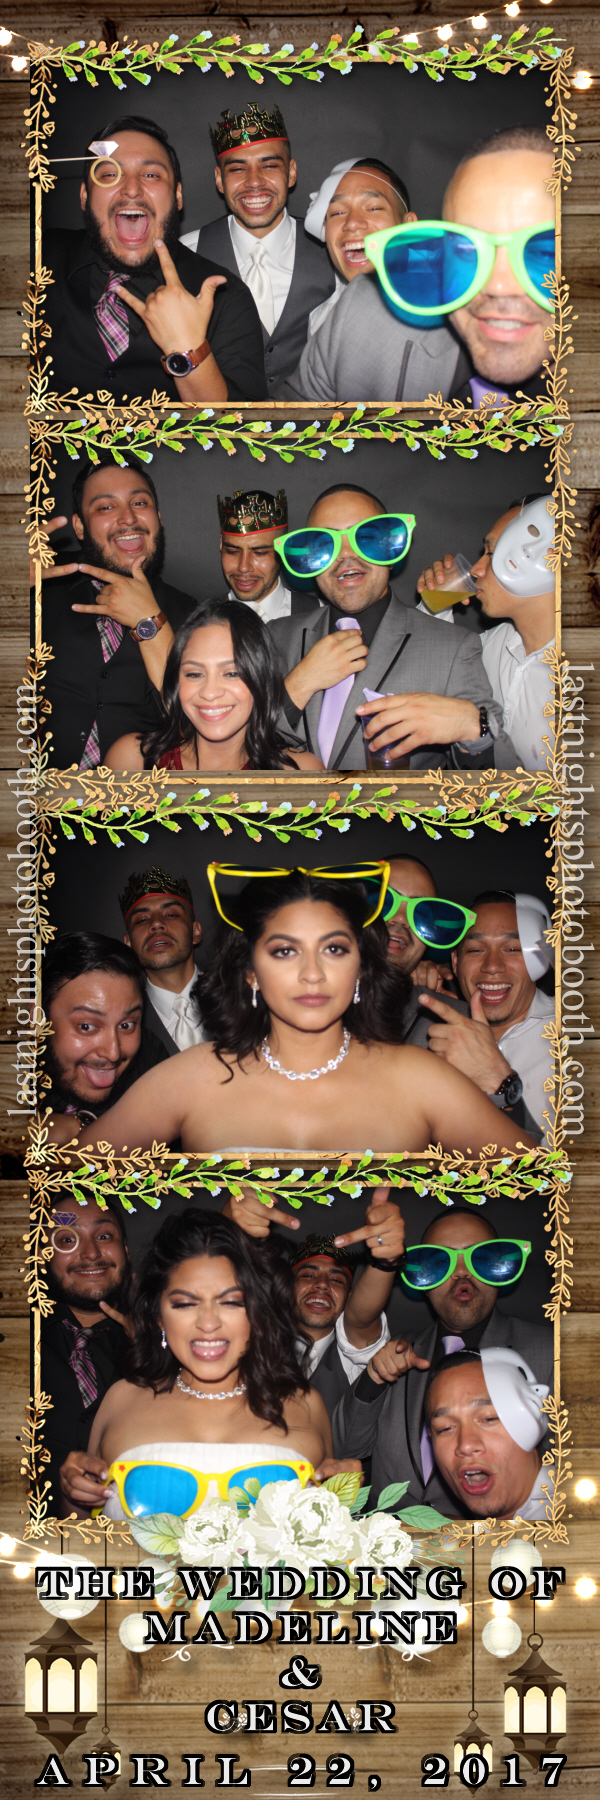 Photo Booth Rental For Madeline and Cesar Wedding_52